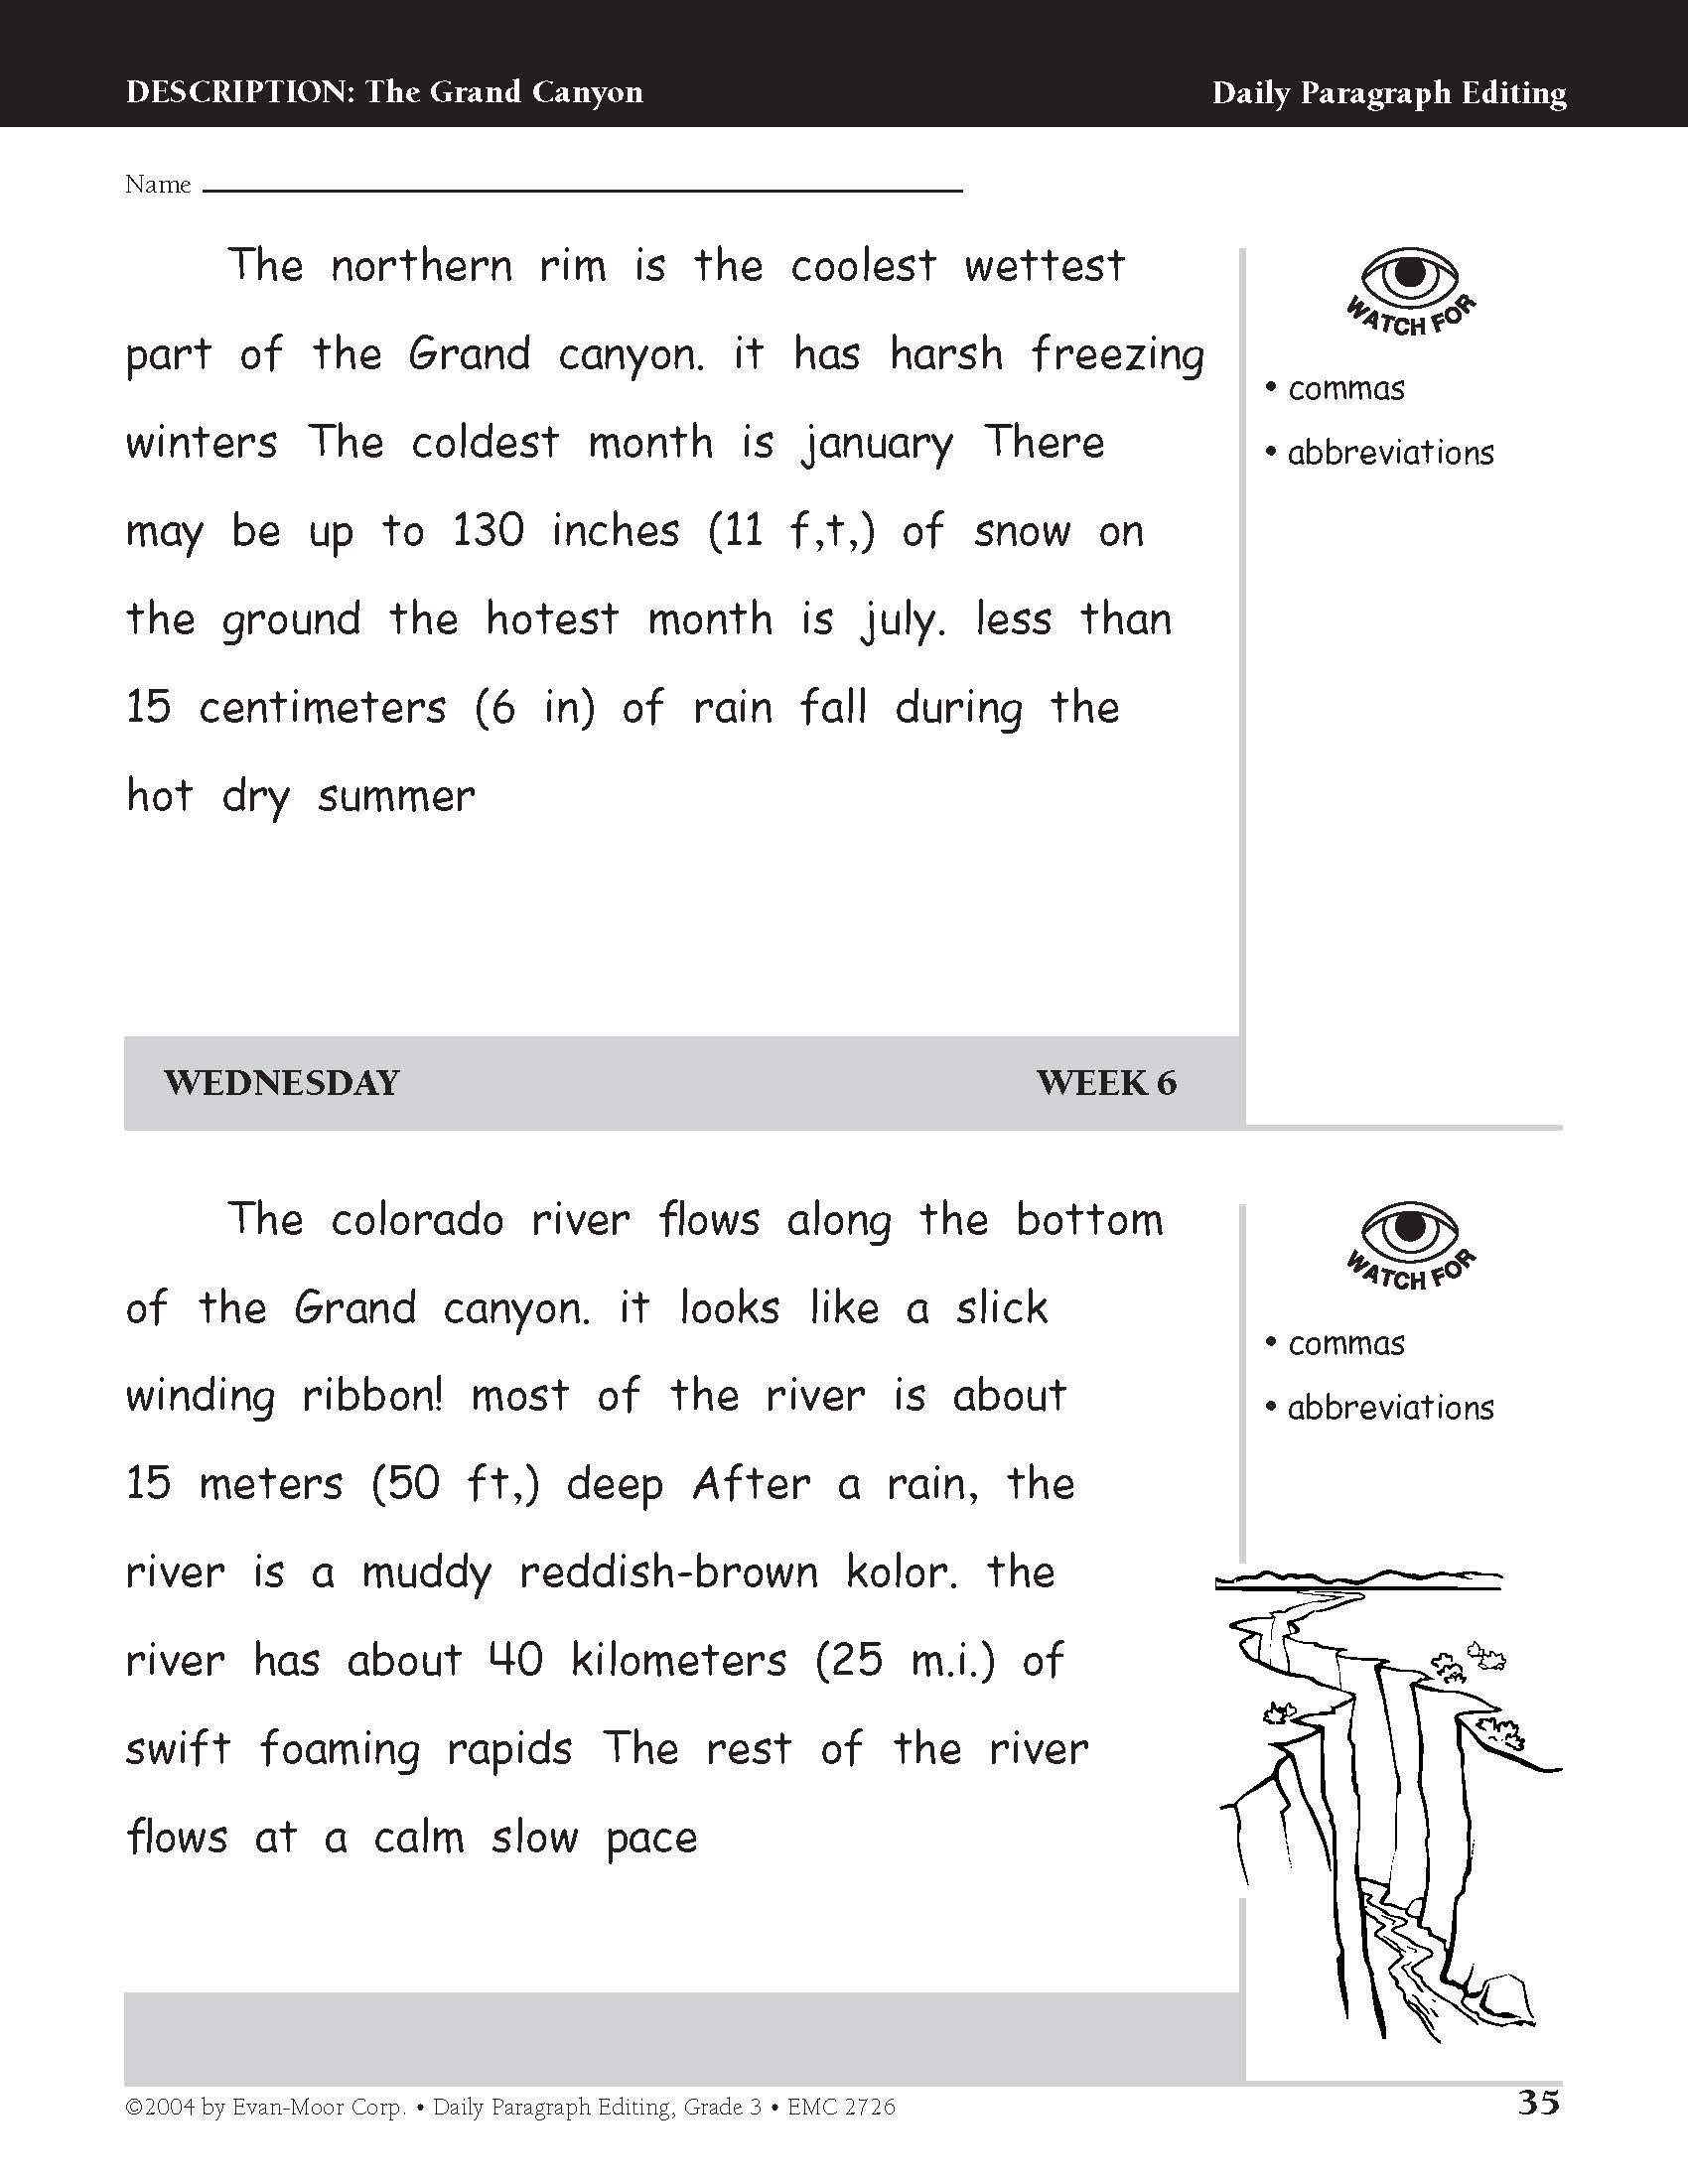 Third Grade Editing Worksheets Amazon Daily Paragraph Editing Grade 3